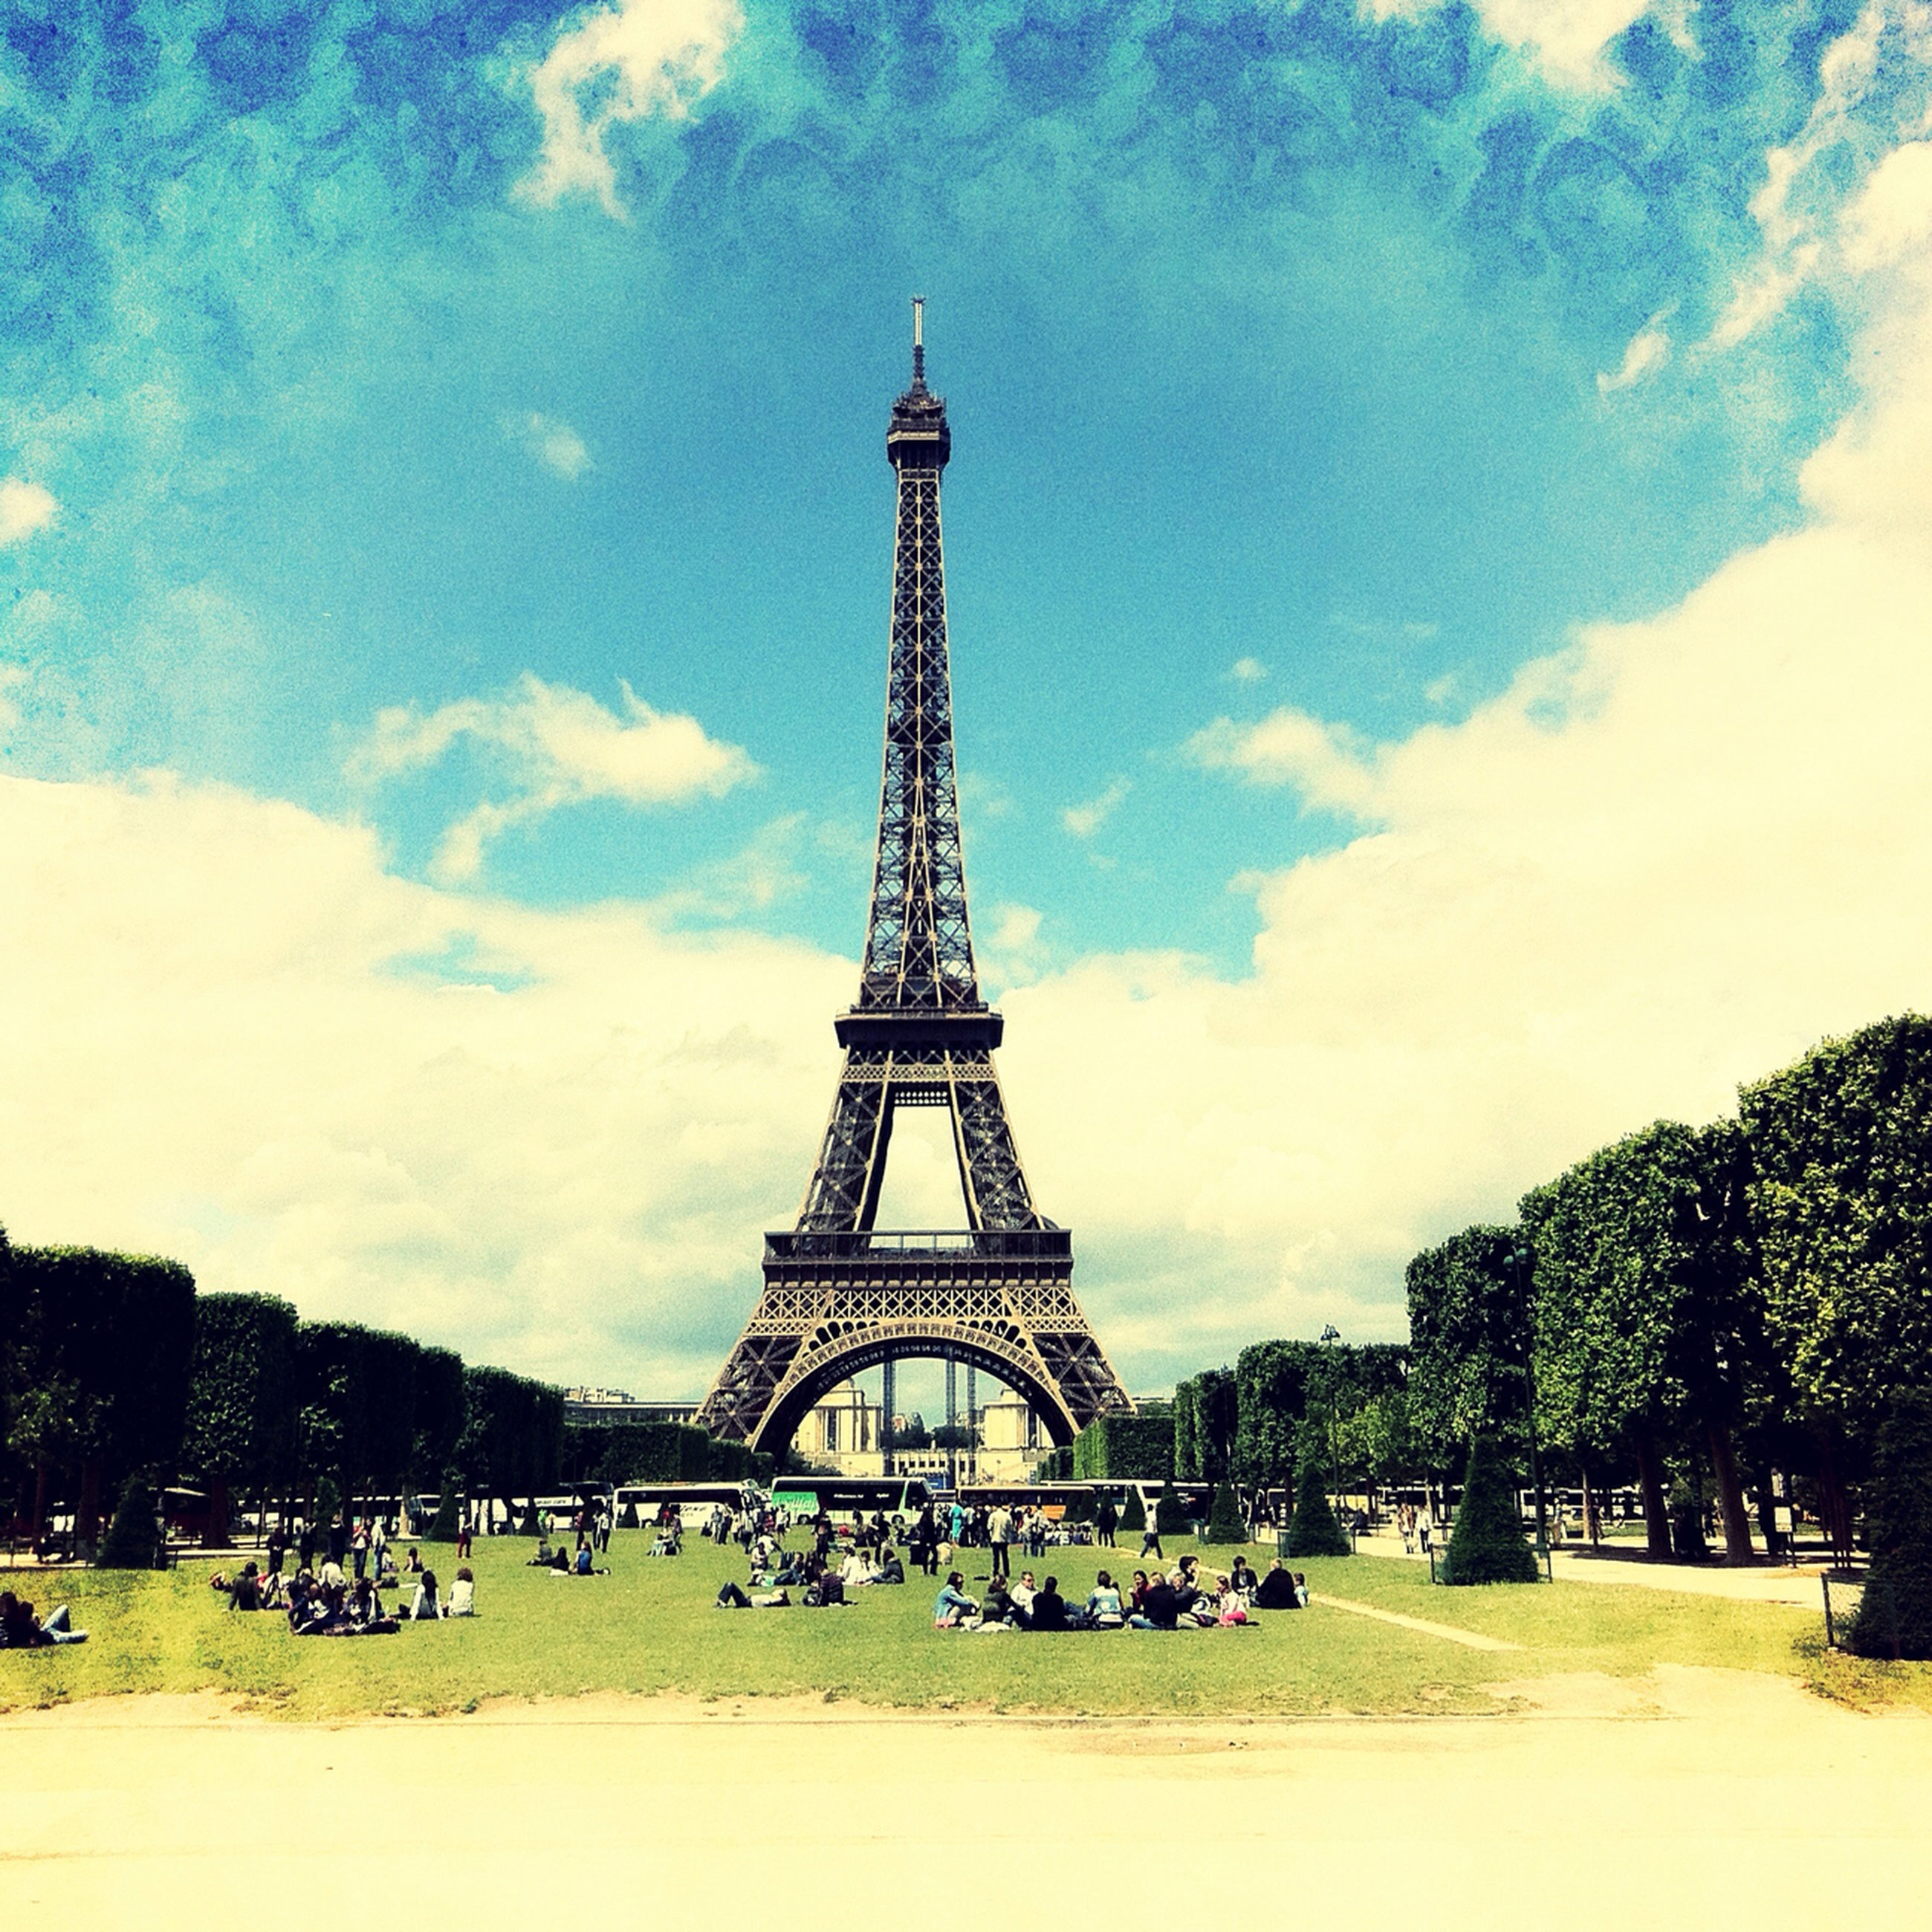 sky, architecture, famous place, eiffel tower, built structure, cloud - sky, tree, international landmark, travel destinations, tourism, tower, history, culture, travel, capital cities, grass, tall - high, cloud, cloudy, metal